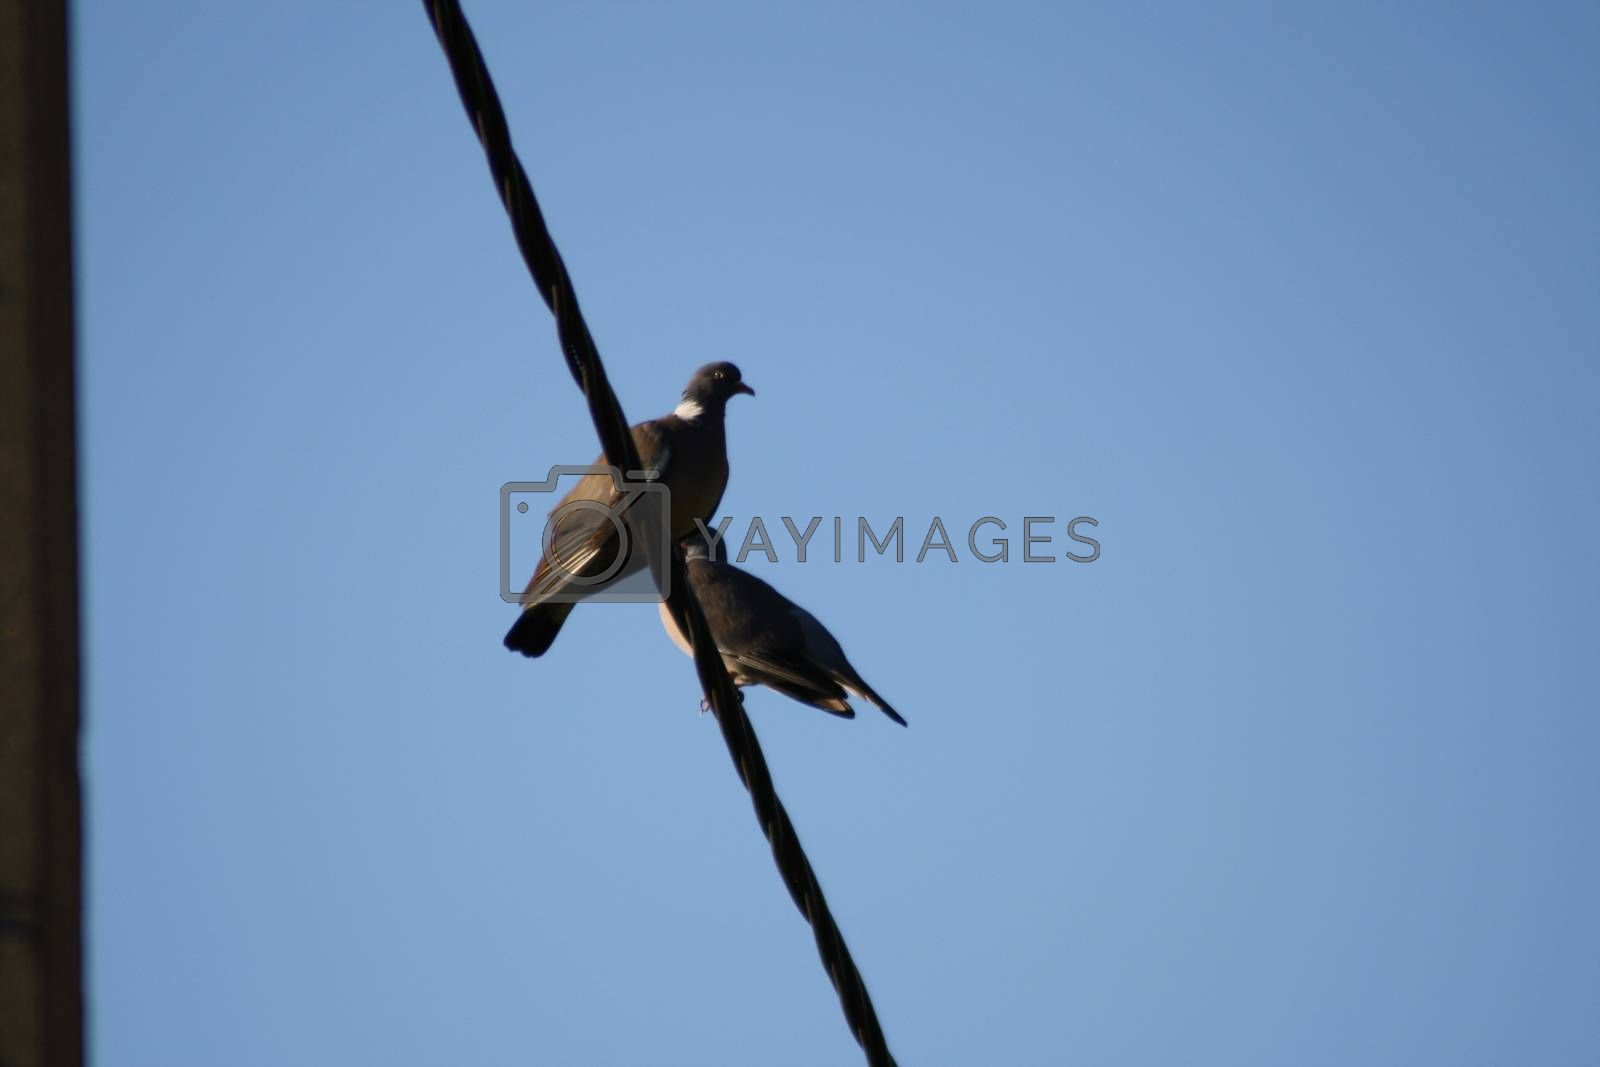 Royalty free image of A birds perched on top of a pole by balage941